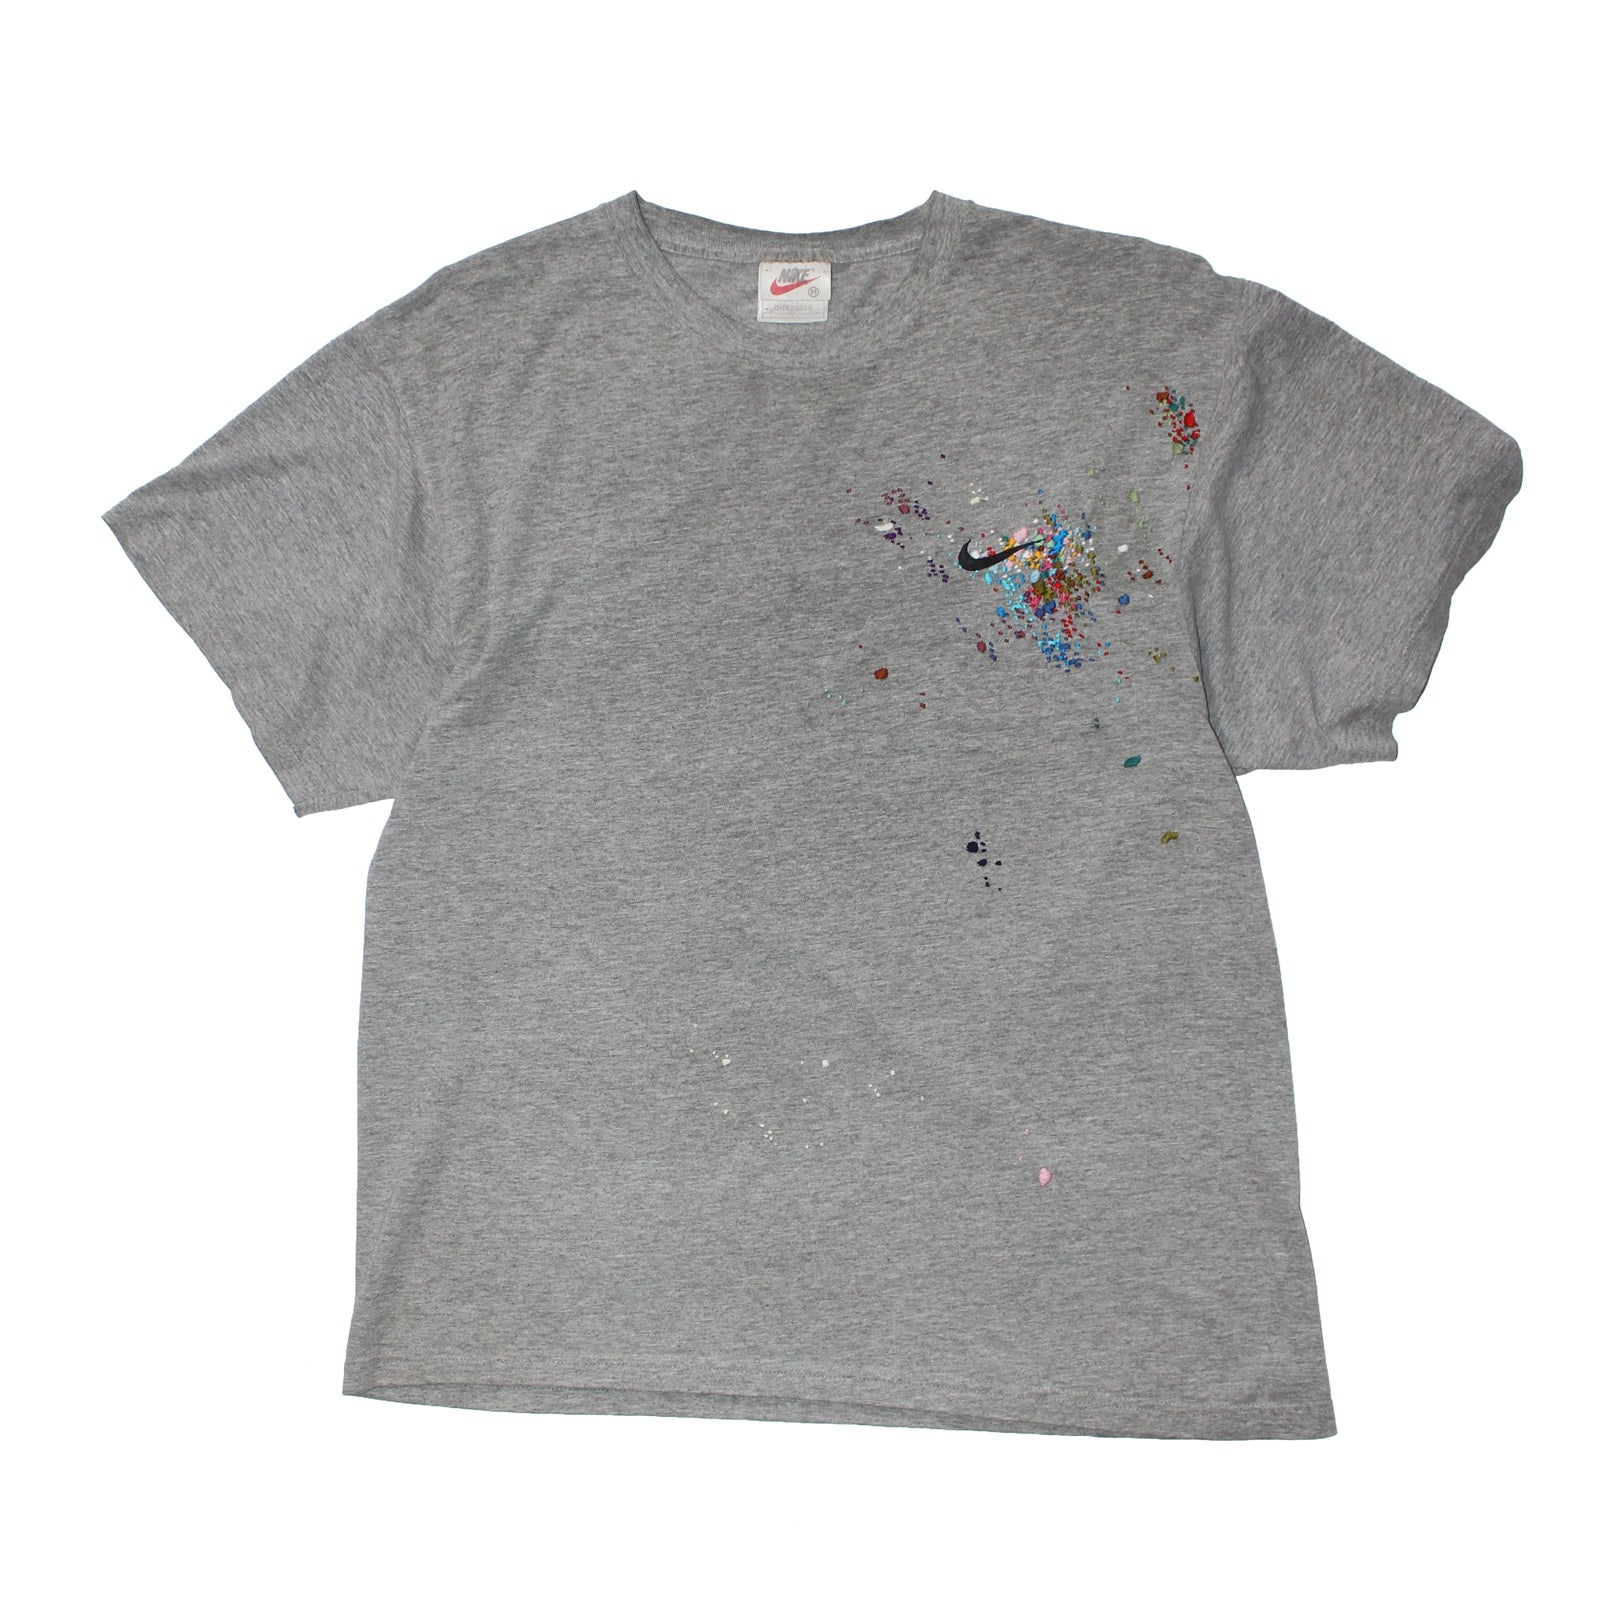 "BANDULU "" BOTTLES OF WATER "" VINTAGE NIKE TEE"